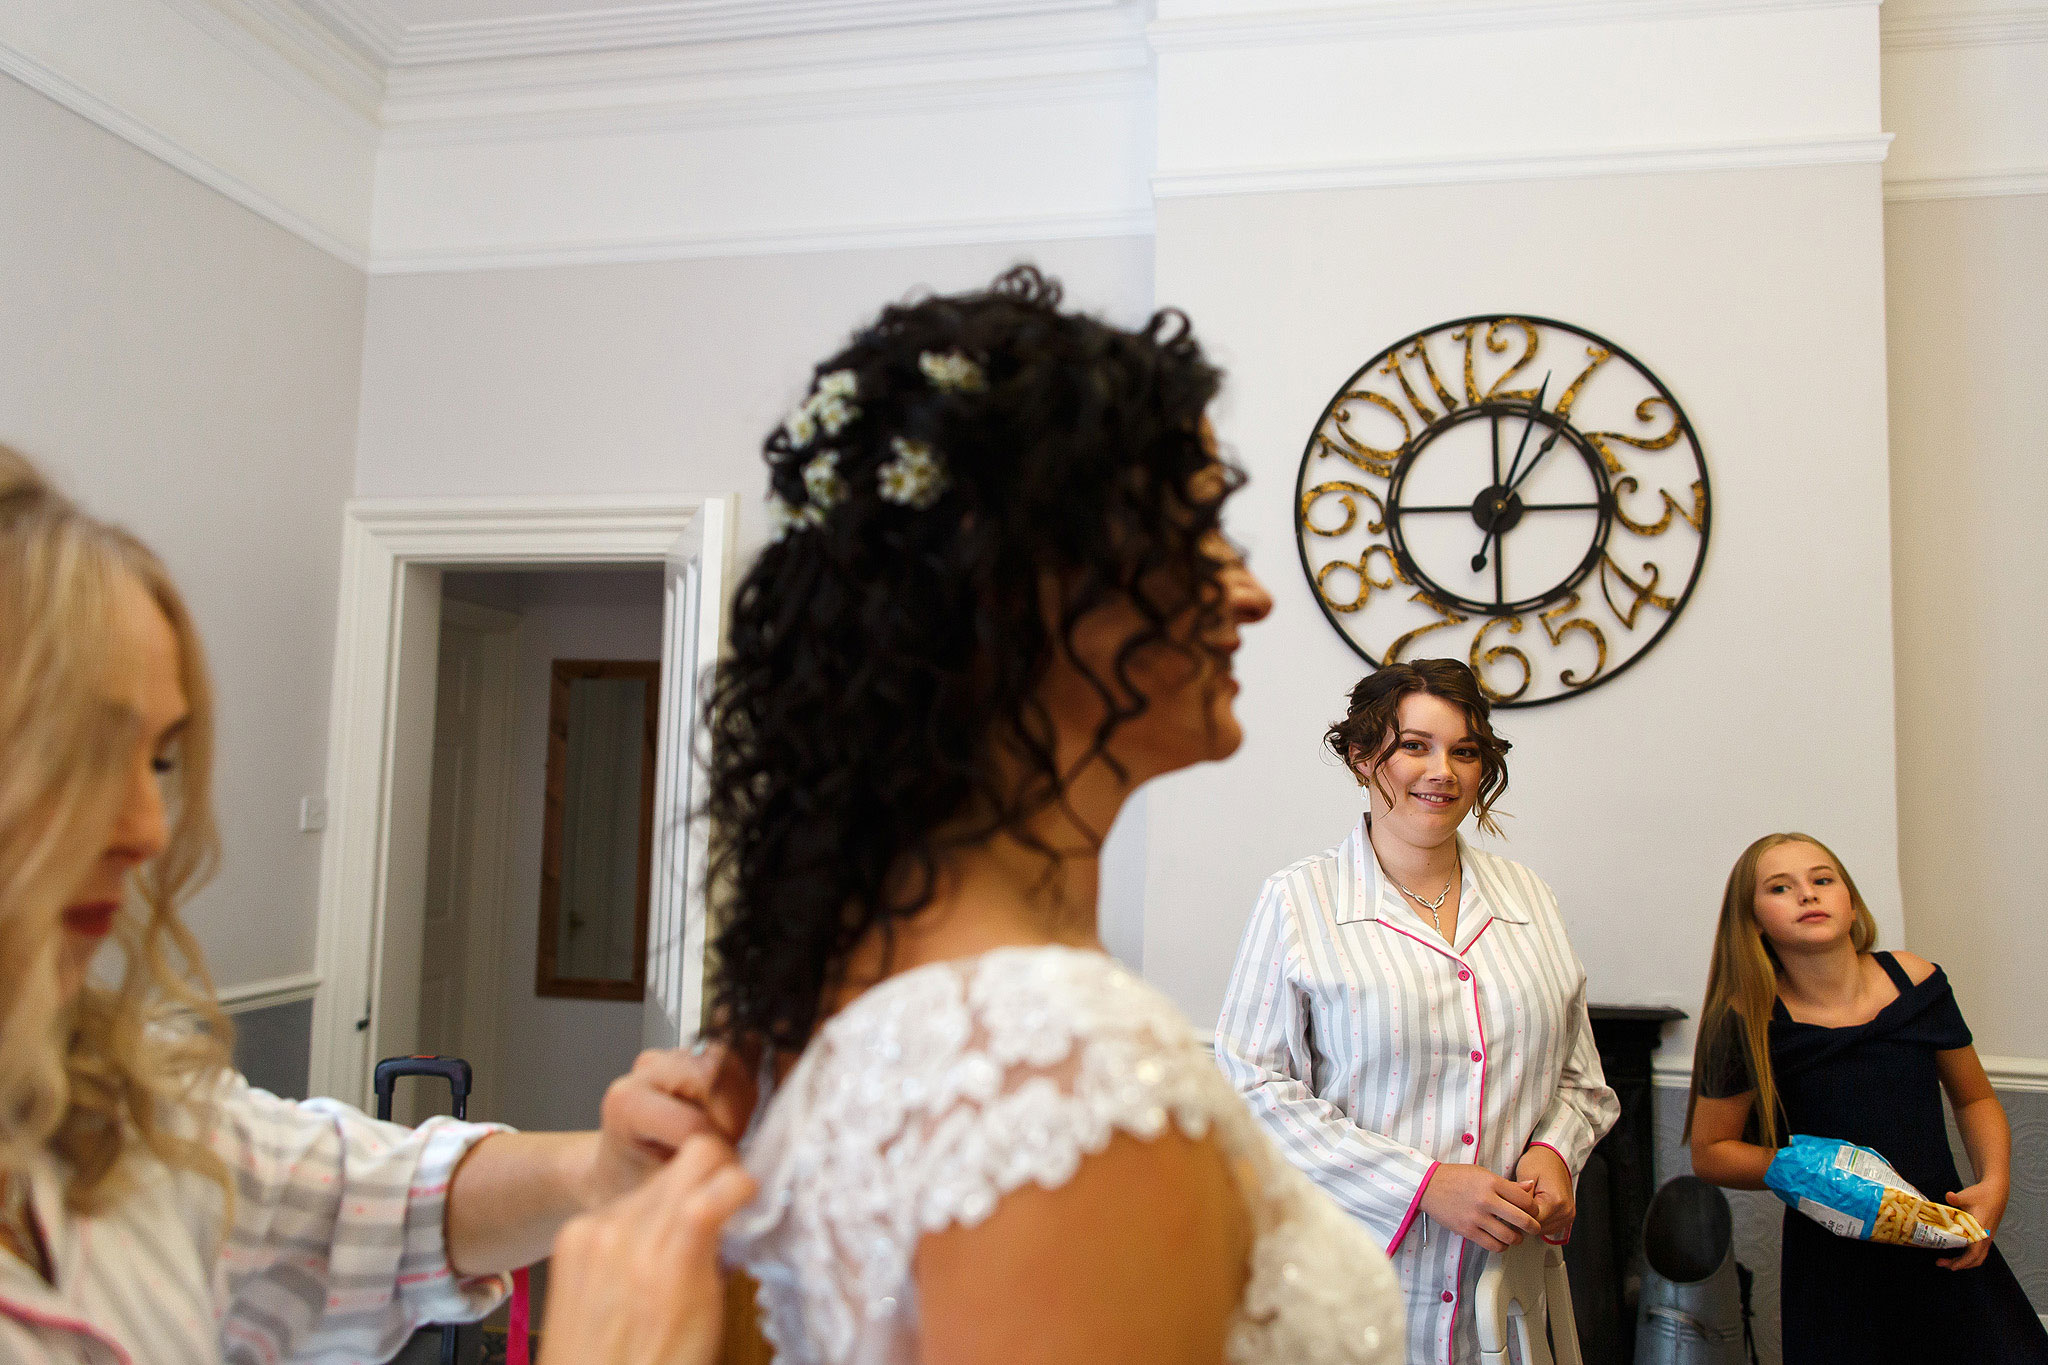 Bridesmaids looking towards bride as she has her dress fastened with clock on the wall showing time | Hargate Hall Wedding Photography